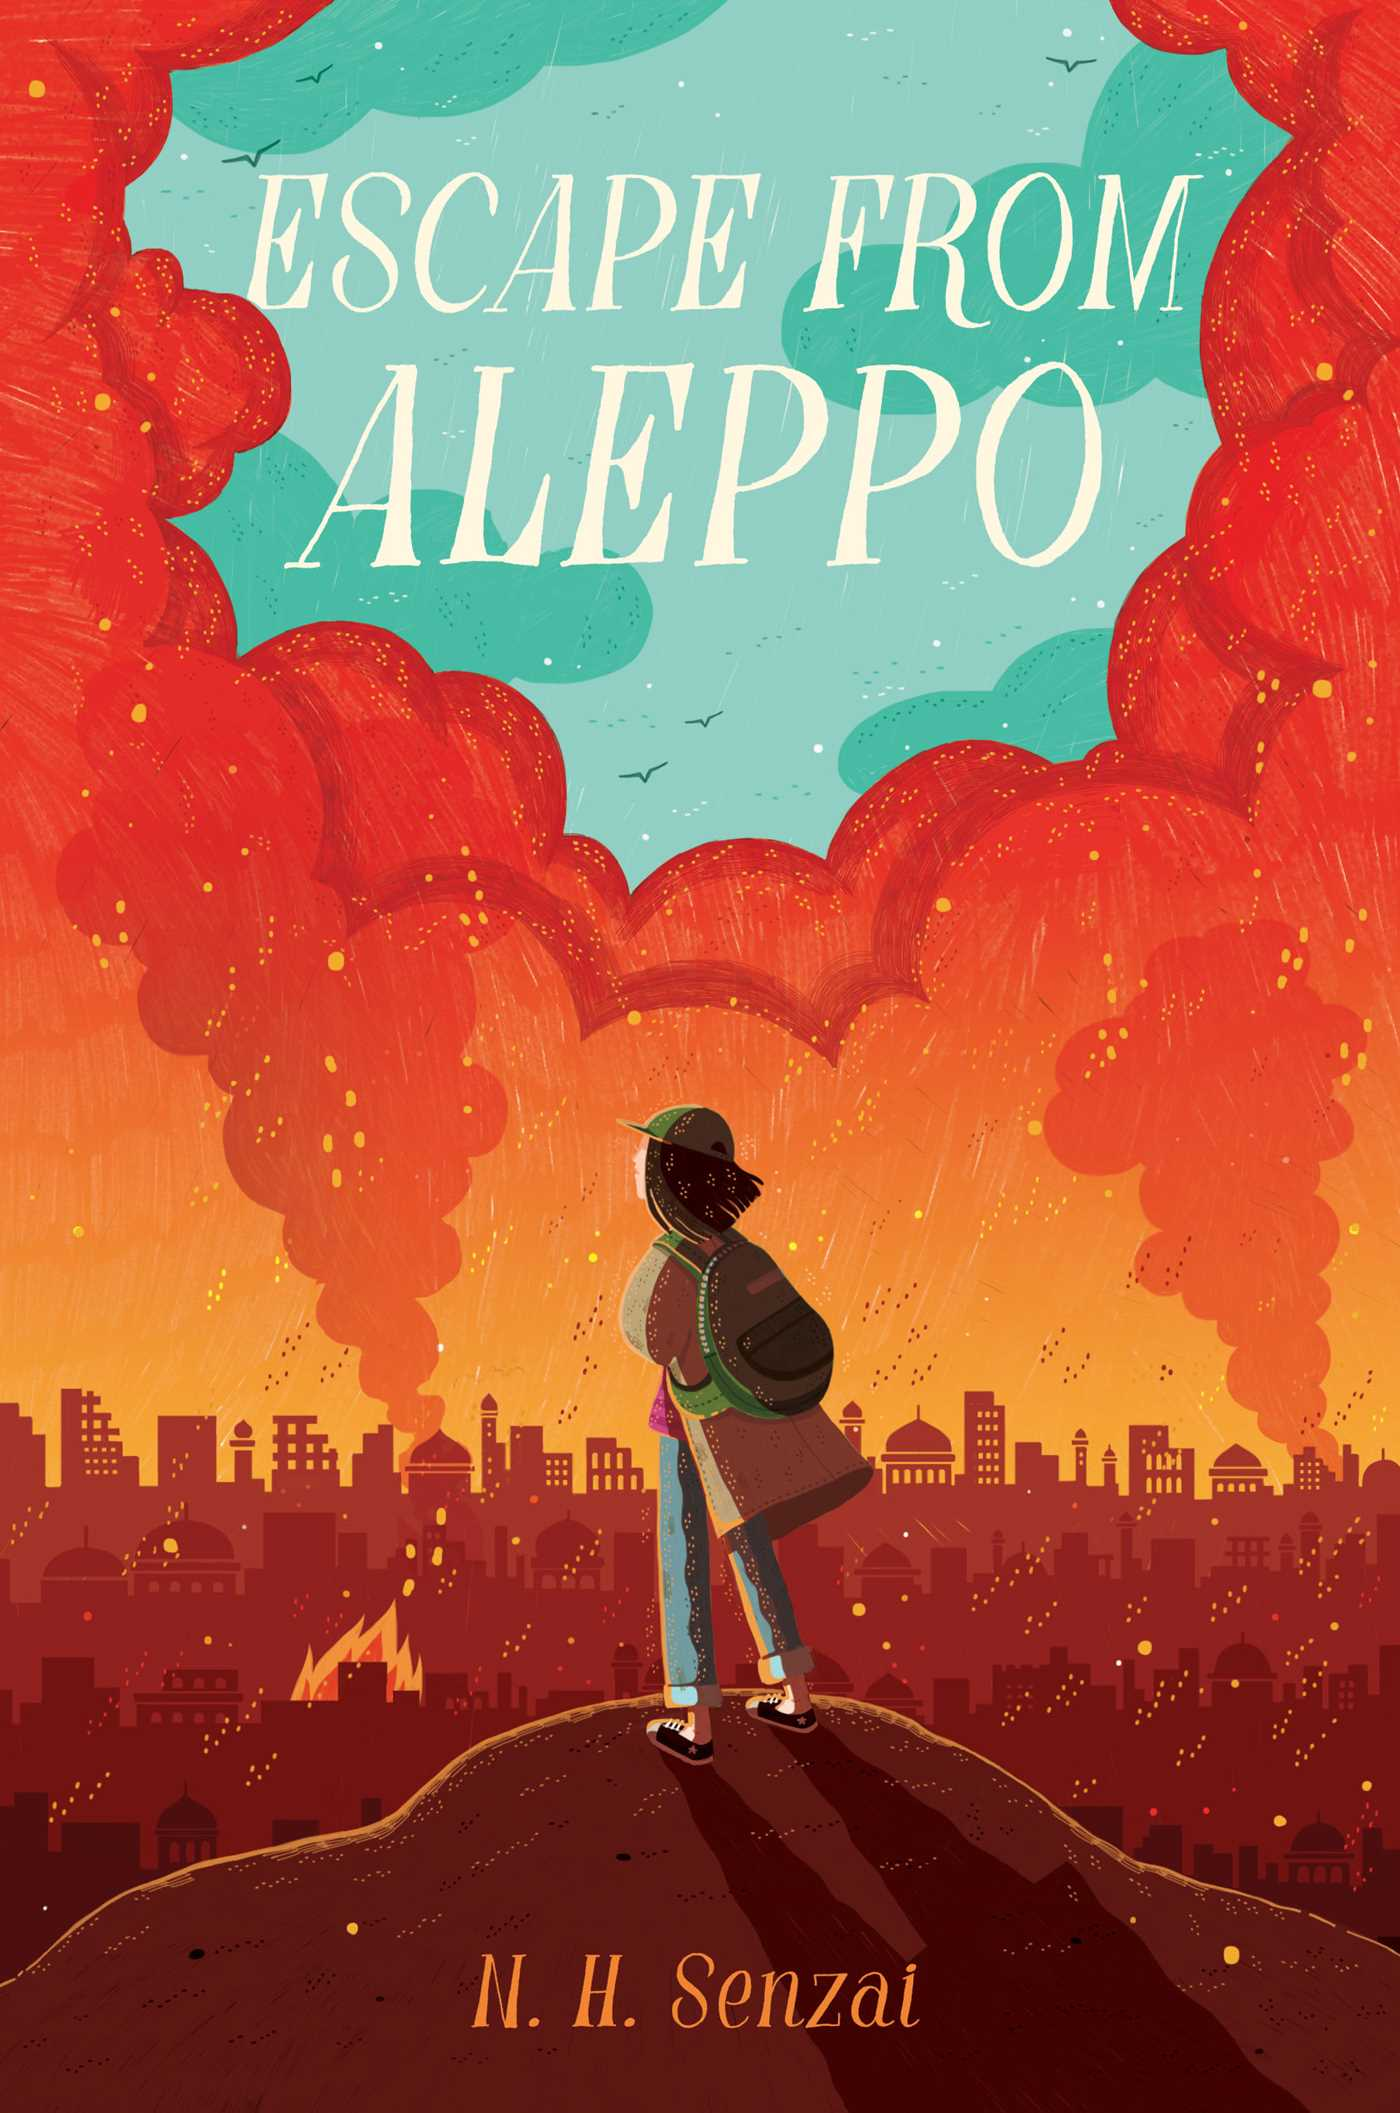 escape-from-aleppo-9781481472173_hr.jpg